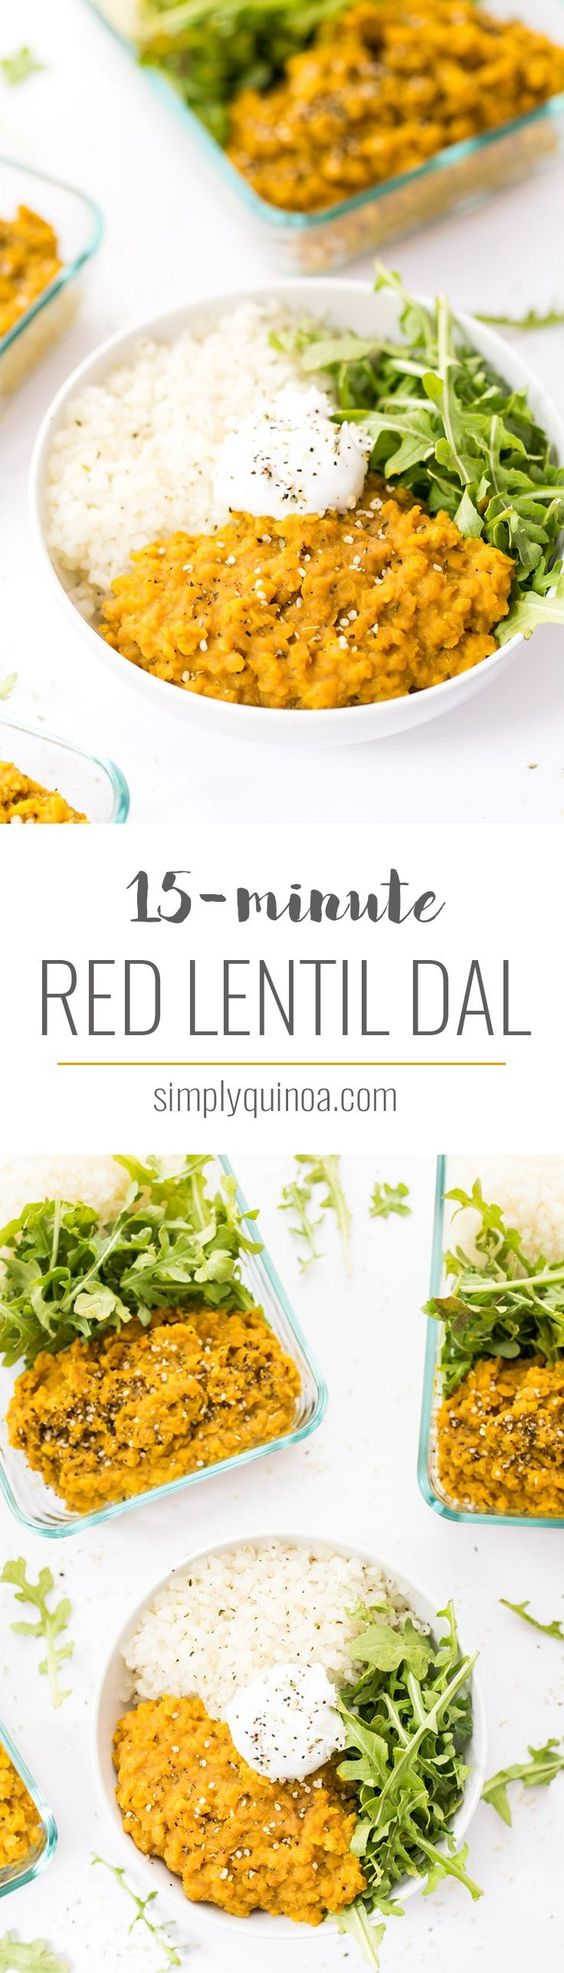 Meal Prep Easy Vegan Red Lentil Dal by Simply Quinoa